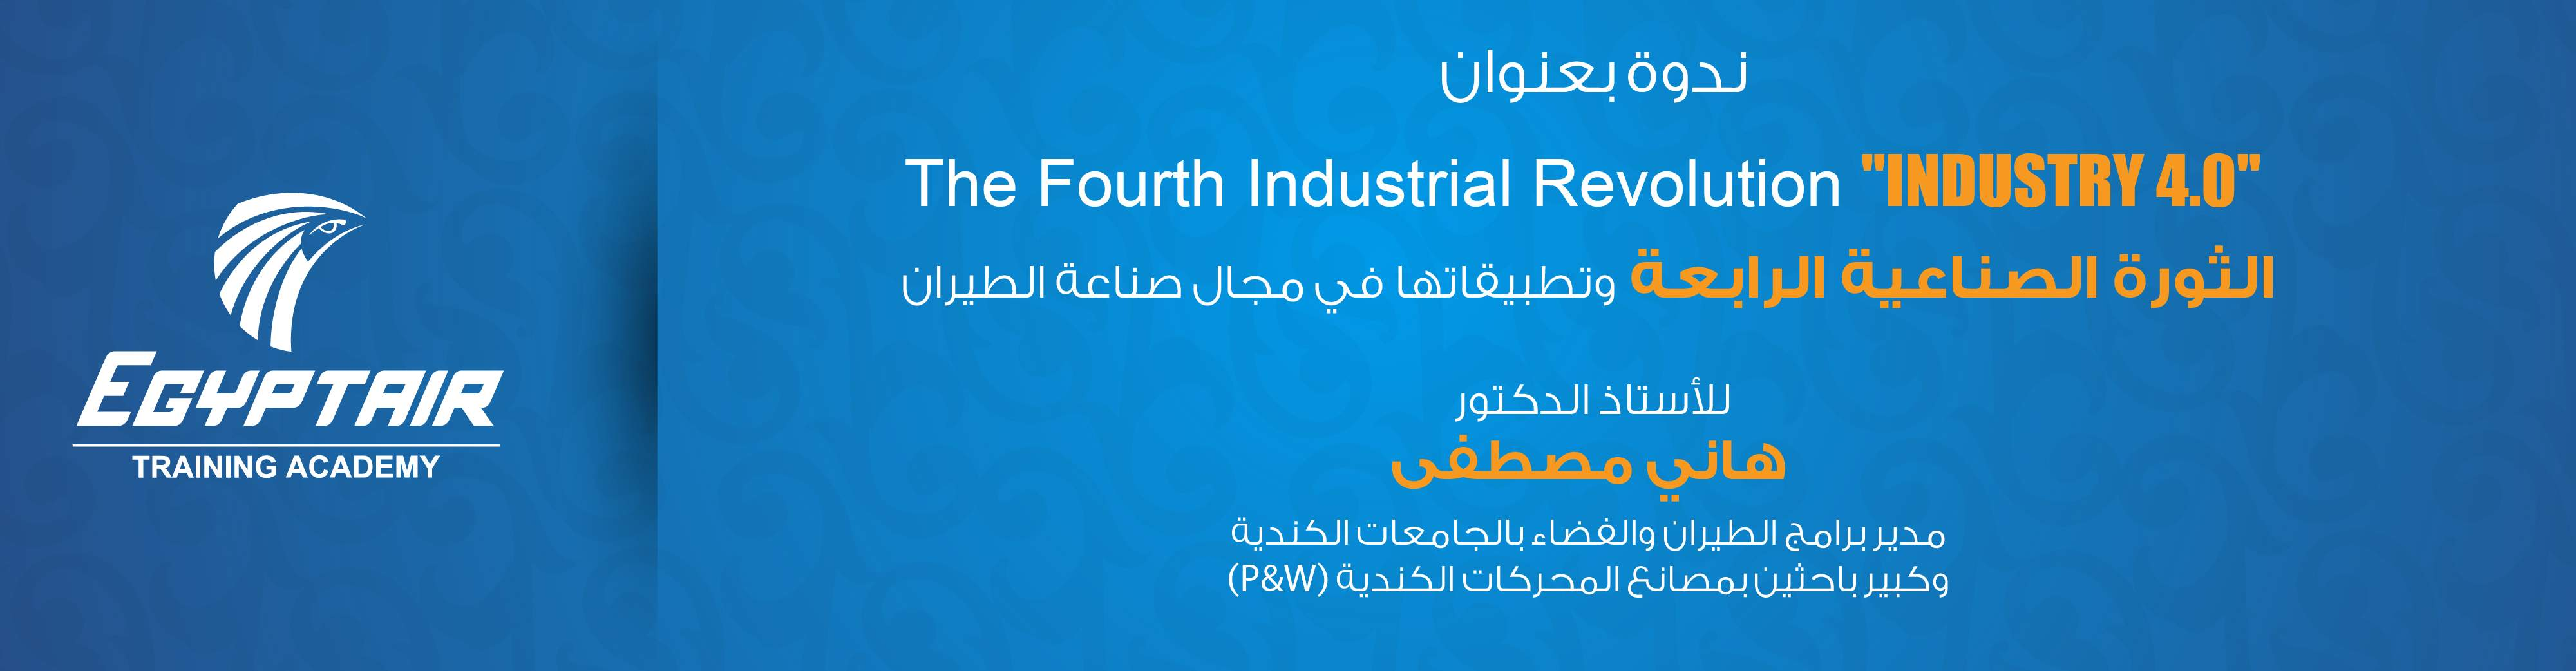 "The Fourth Industrial Revolution ""Industry 4.0"": Technology and Skills Challenges"